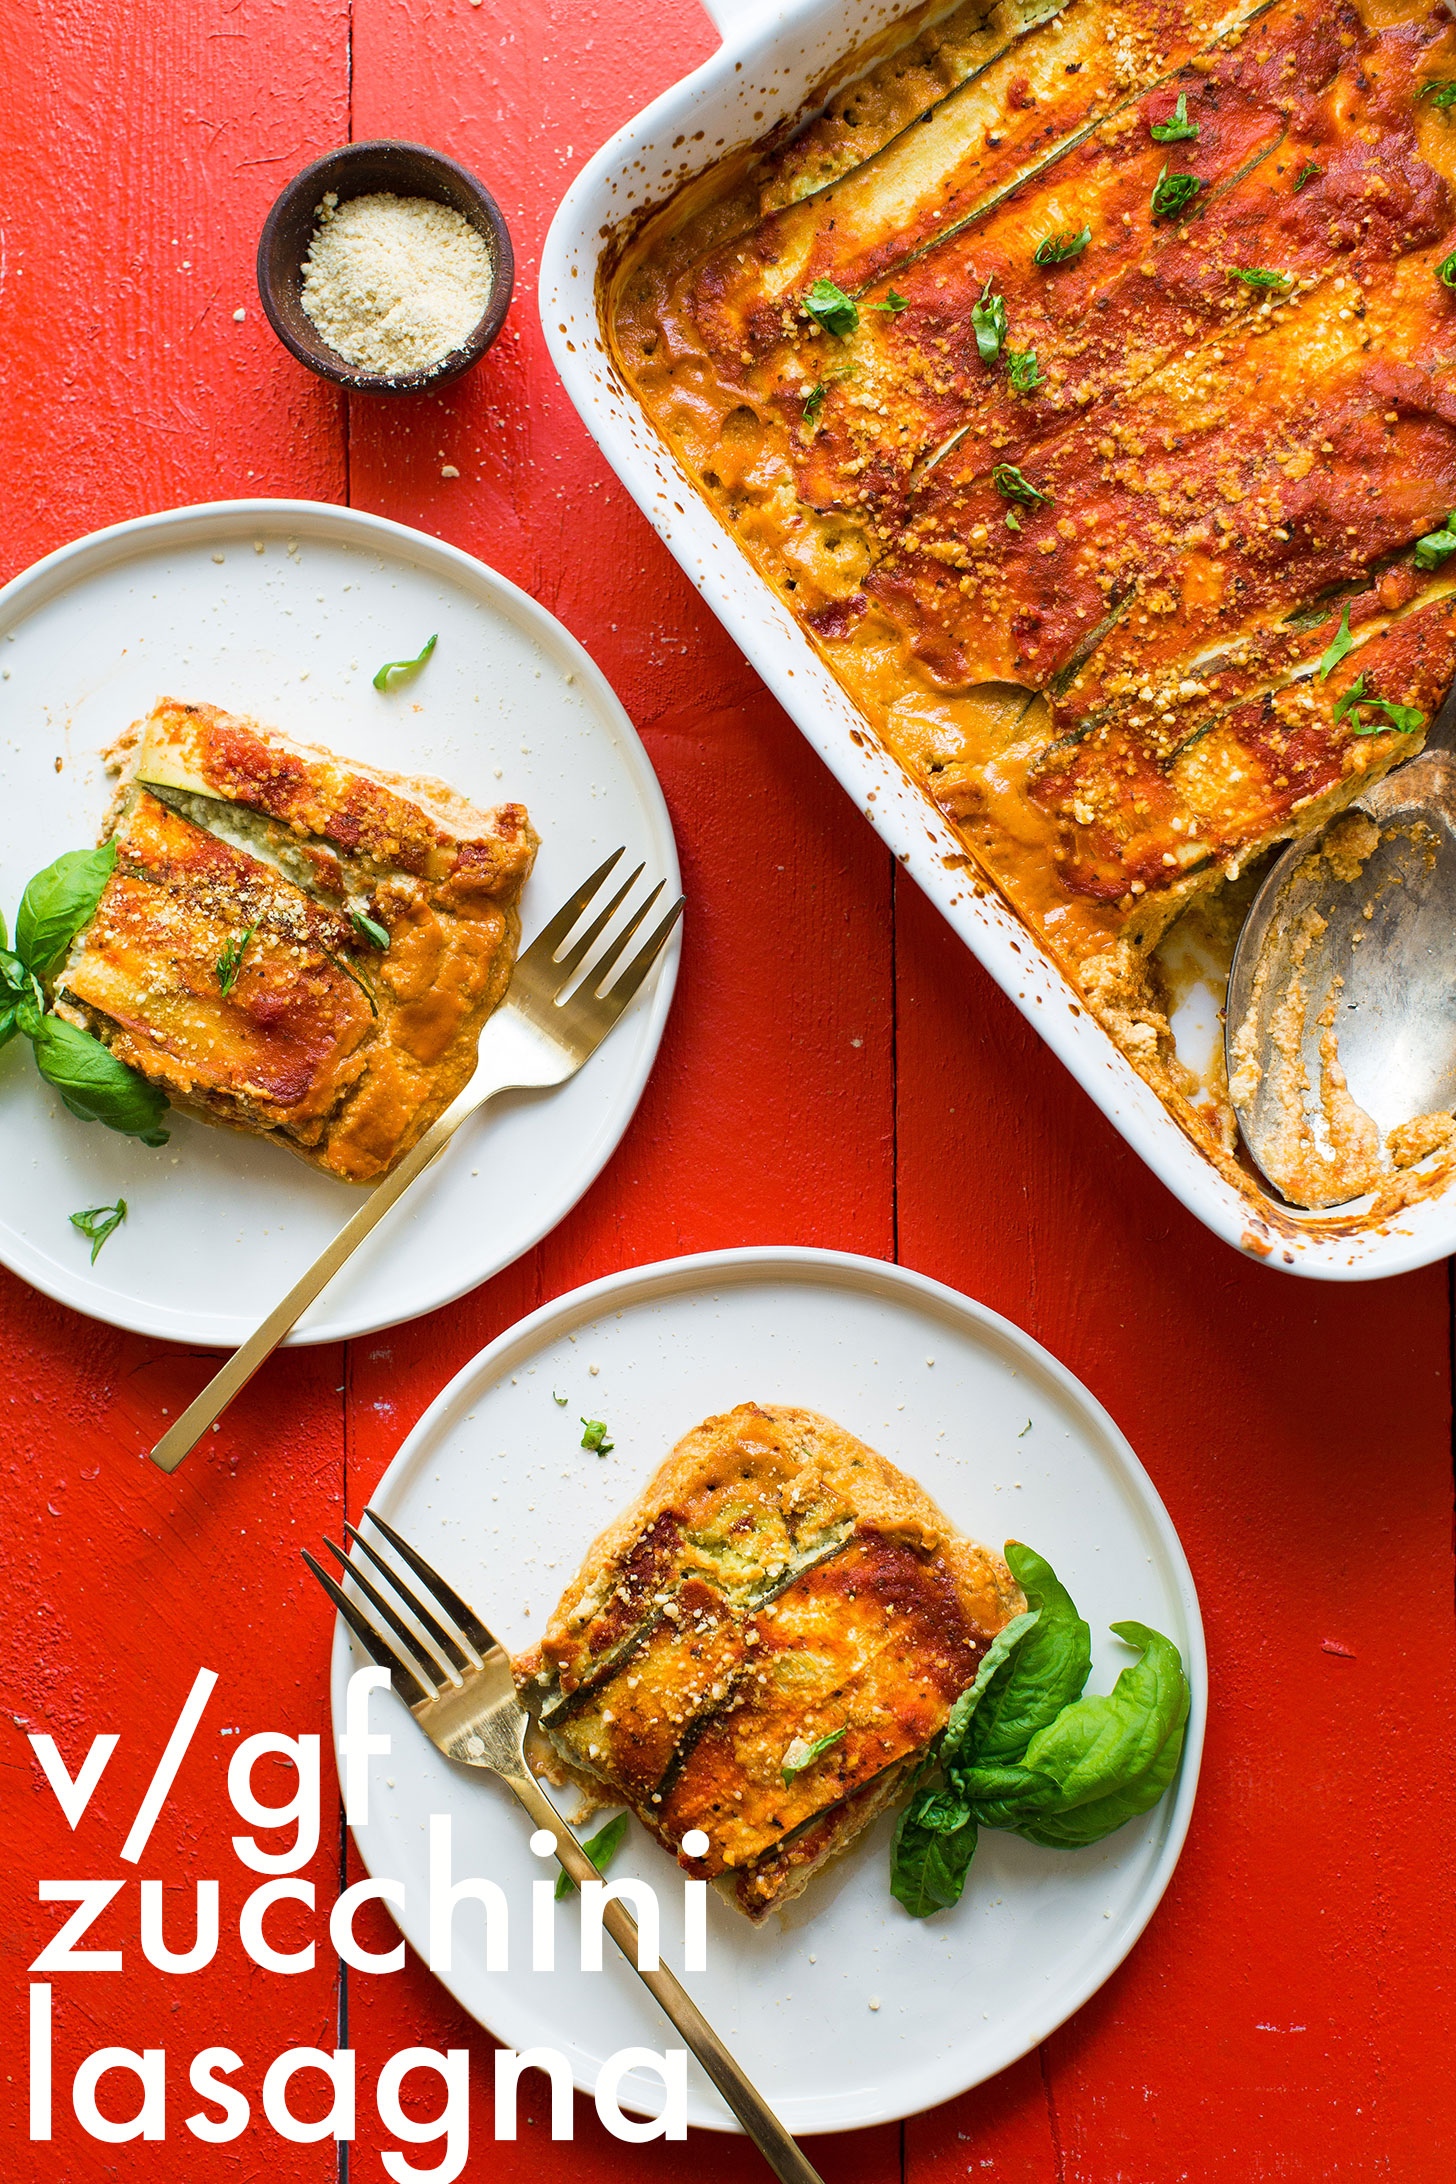 Two servings of gluten-free vegan zucchini lasagna on dinner plates  sc 1 st  Minimalist Baker : healthy dinner plates - pezcame.com